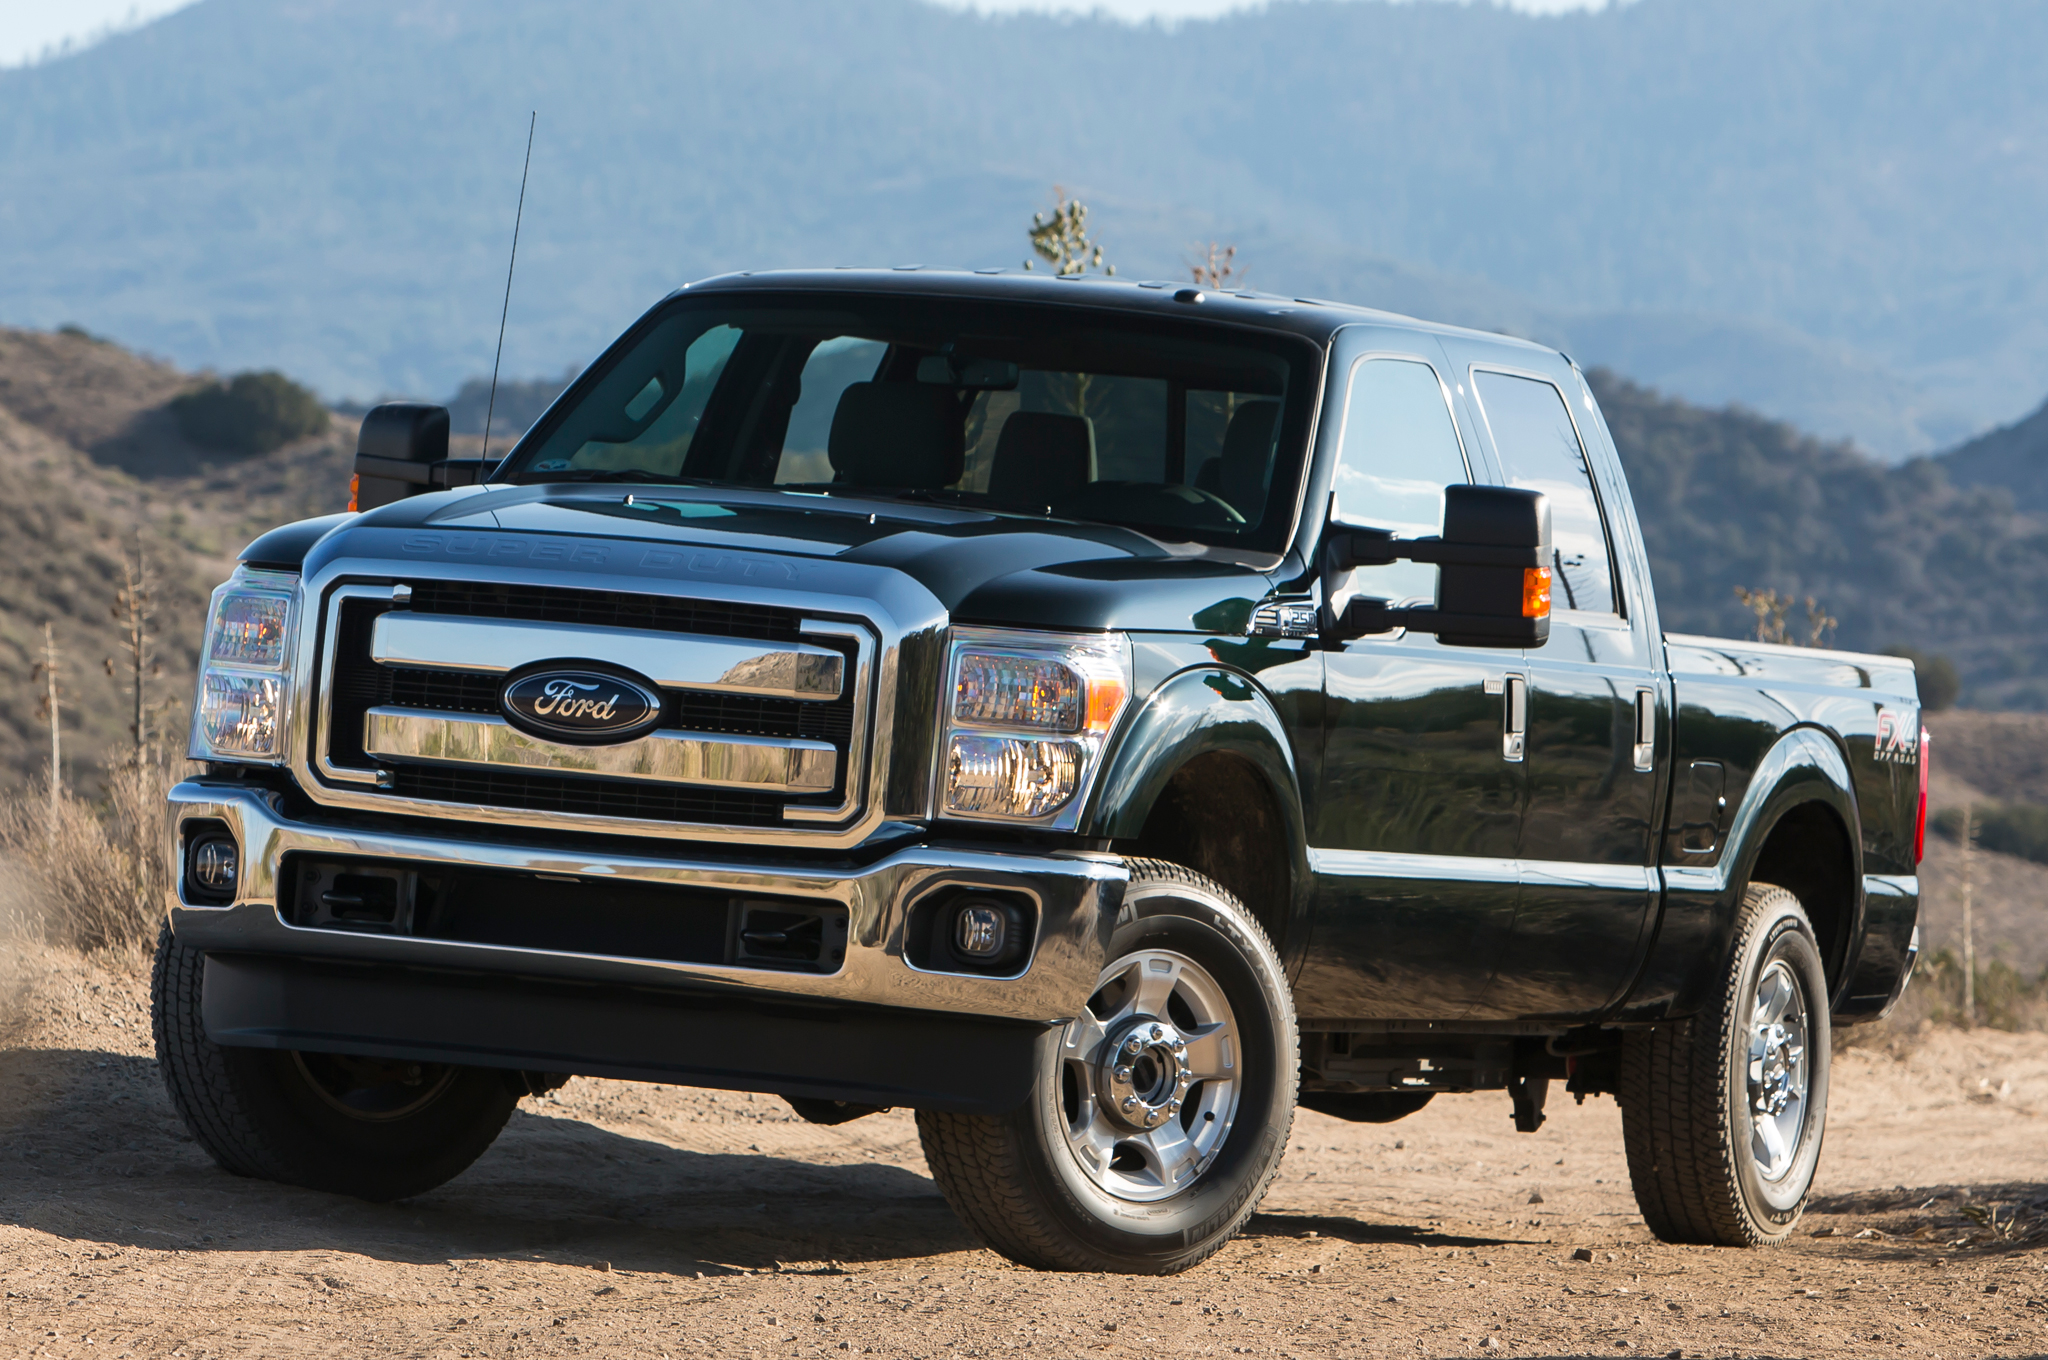 Ford F-250 Super Duty #11